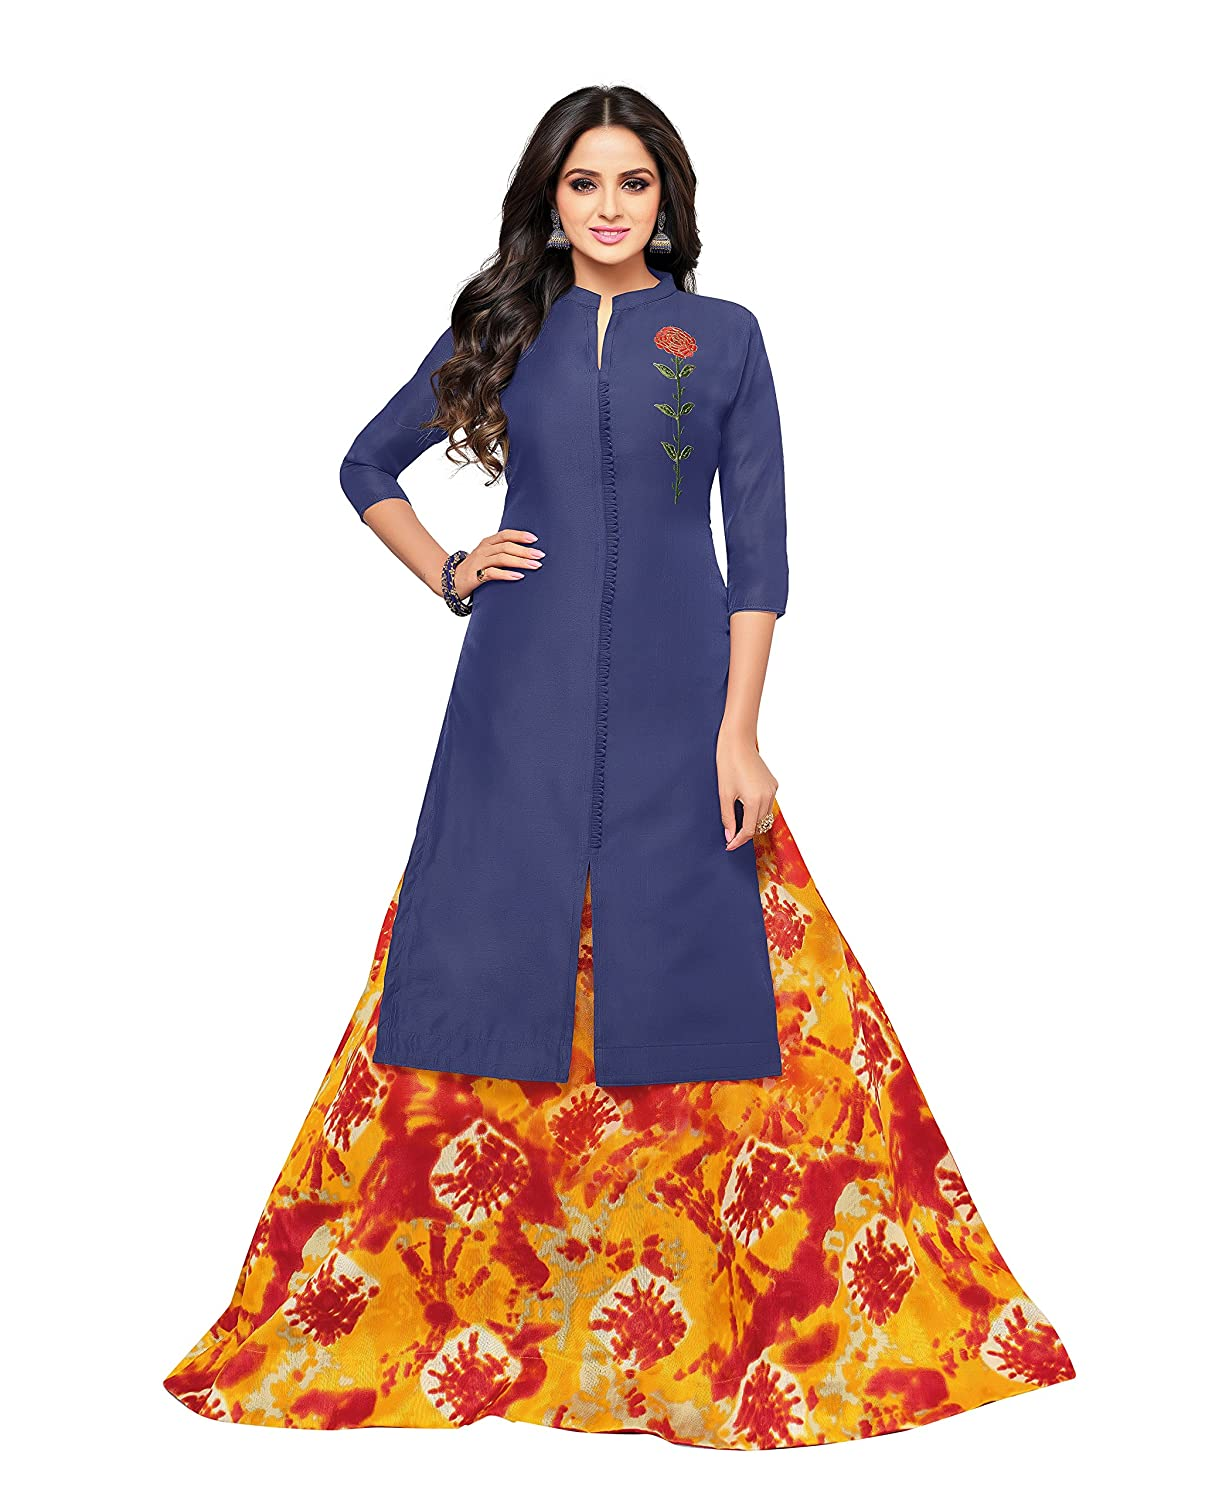 OOMPH! Women's Unstitched Cotton blend Salwar Suit Dupatta Material - Navy Blue